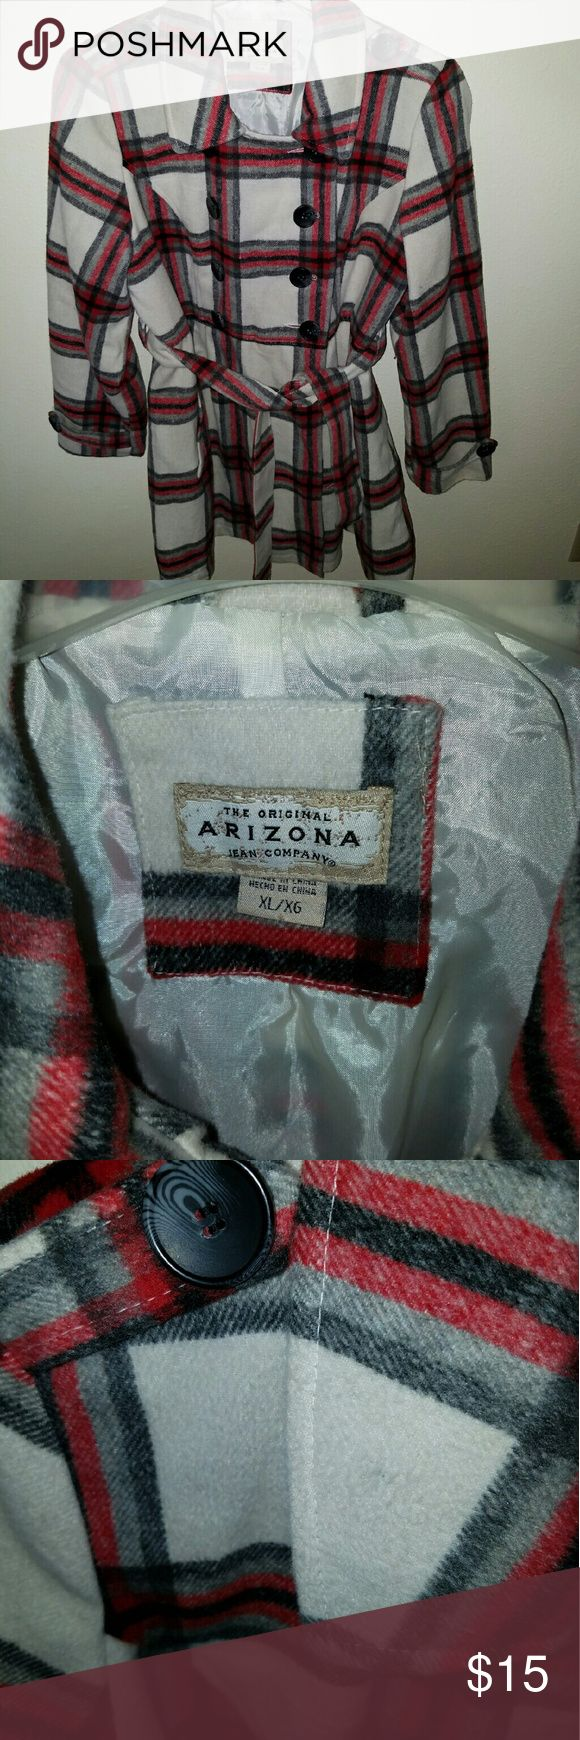 Arizona Jean Co. Plaid Pea Coat Size XL. Cream jacket with red, black and gray plaid. Small black dot on collar (see photo), but otherwise in good condition! Nice fall/winter staple piece! Arizona Jean Company Jackets & Coats Pea Coats